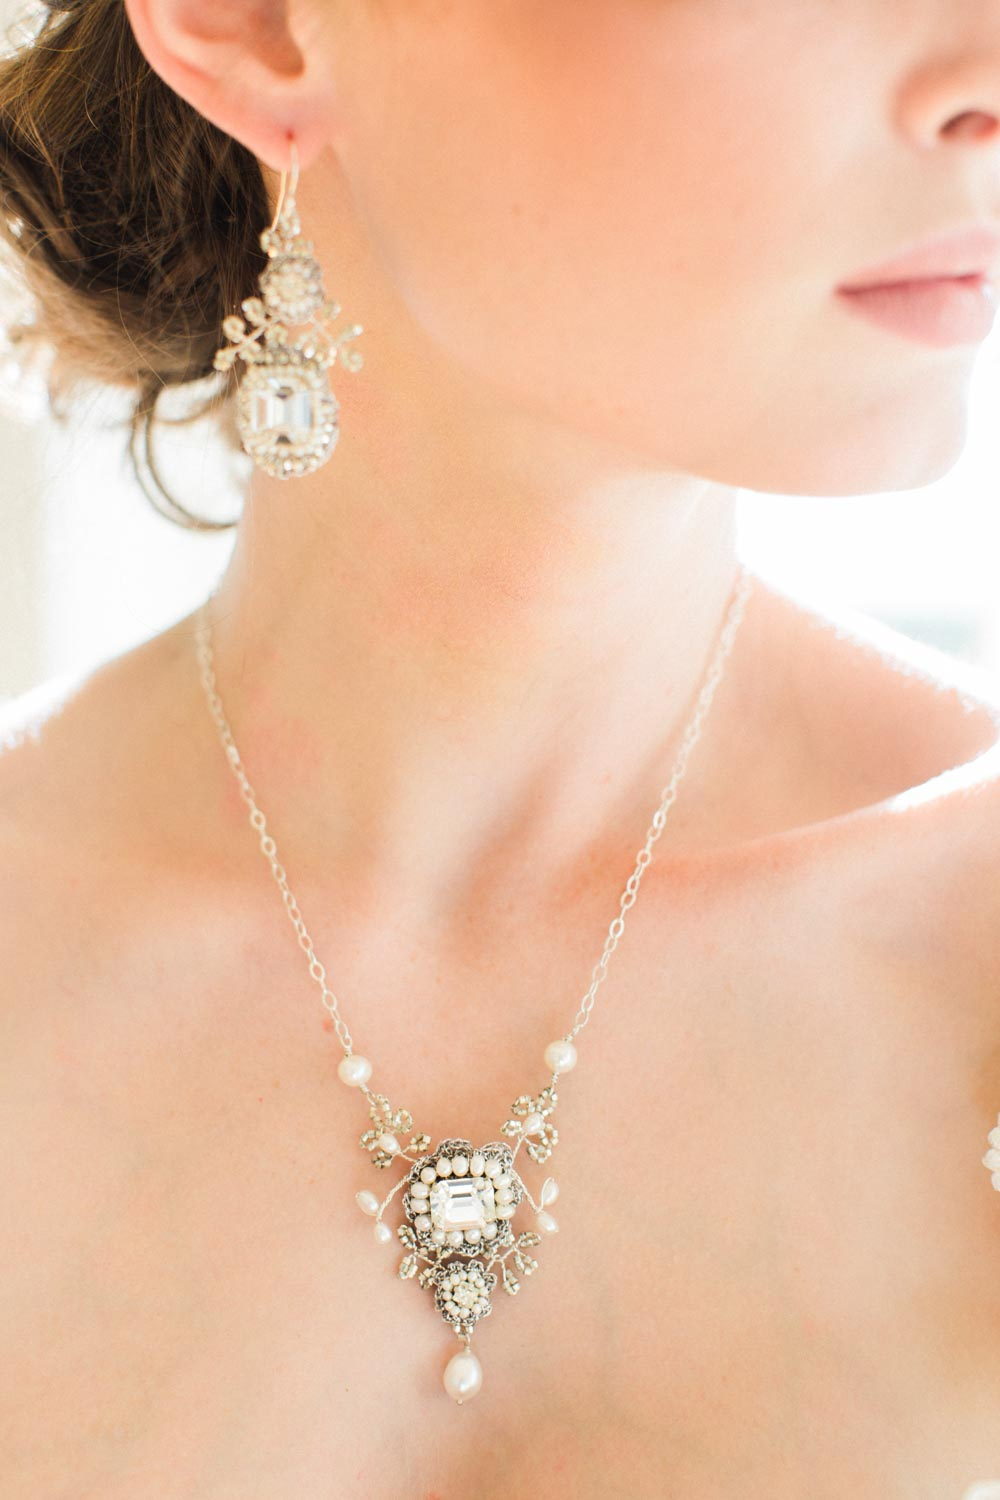 Victorine Earrings & Necklace